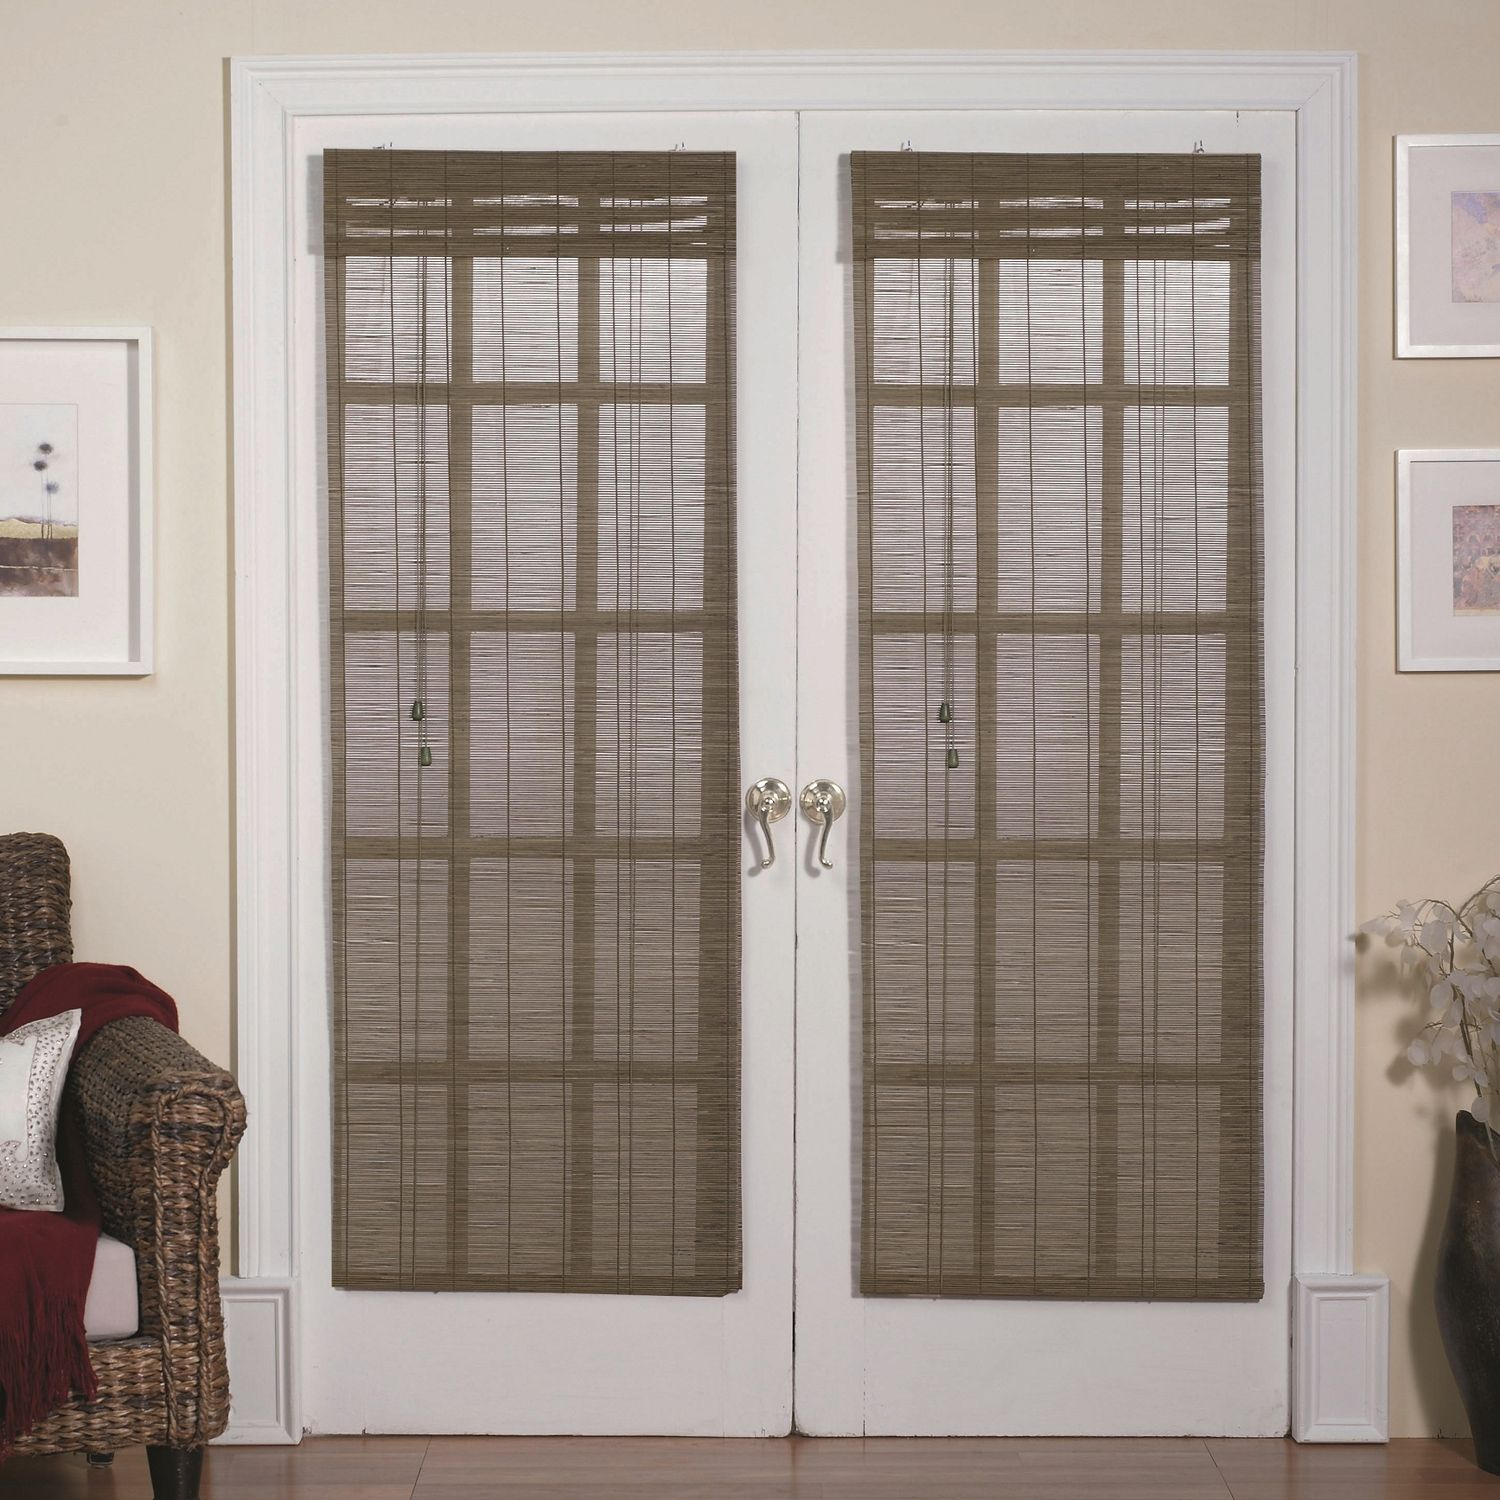 Bamboo Blinds For Patio Doors Patio Decor Pinterest